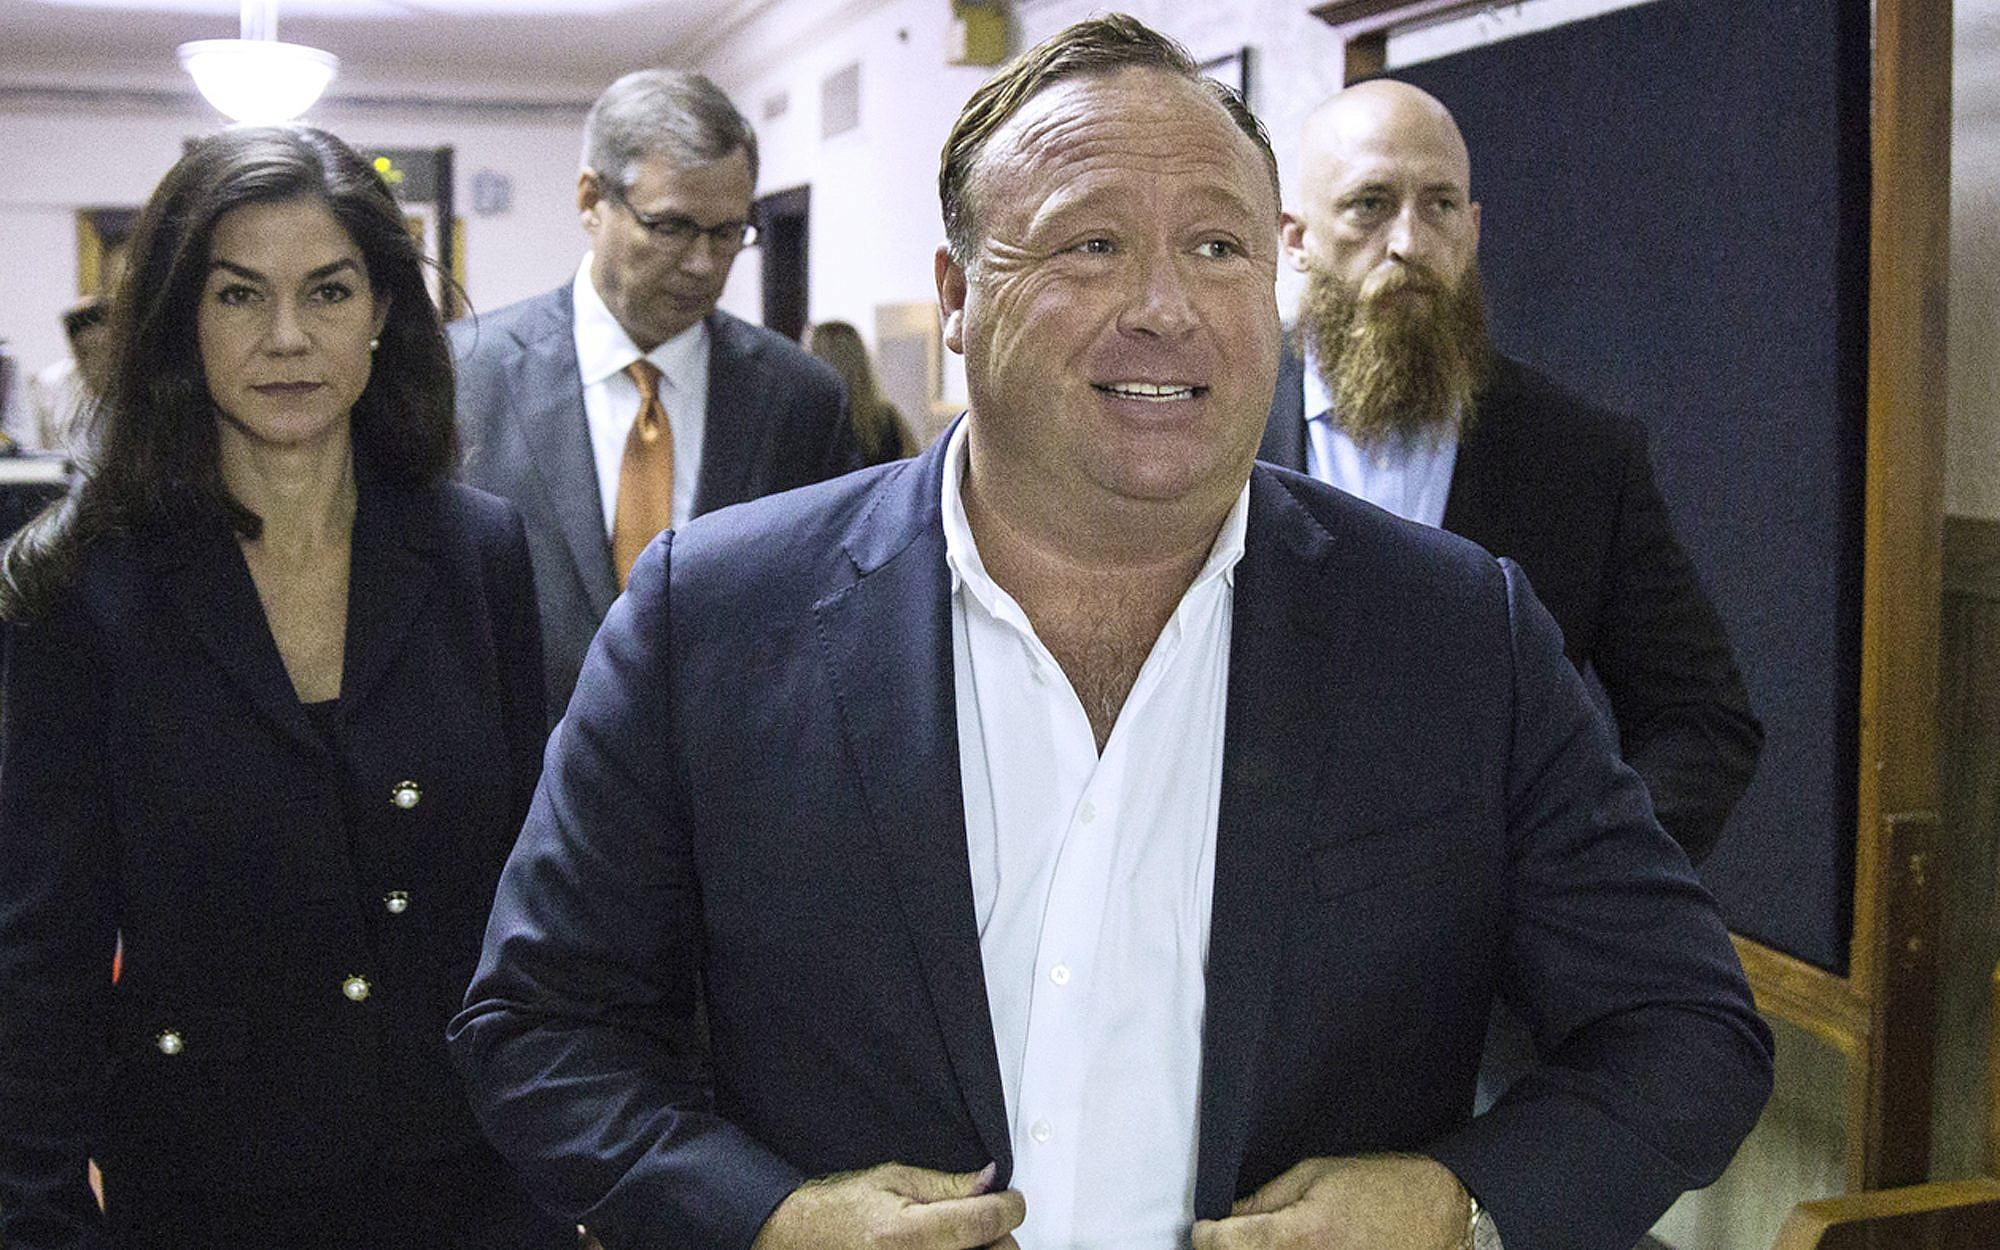 Facebook Joins YouTube in Suspending Infowars' Alex Jones for Hate Speech